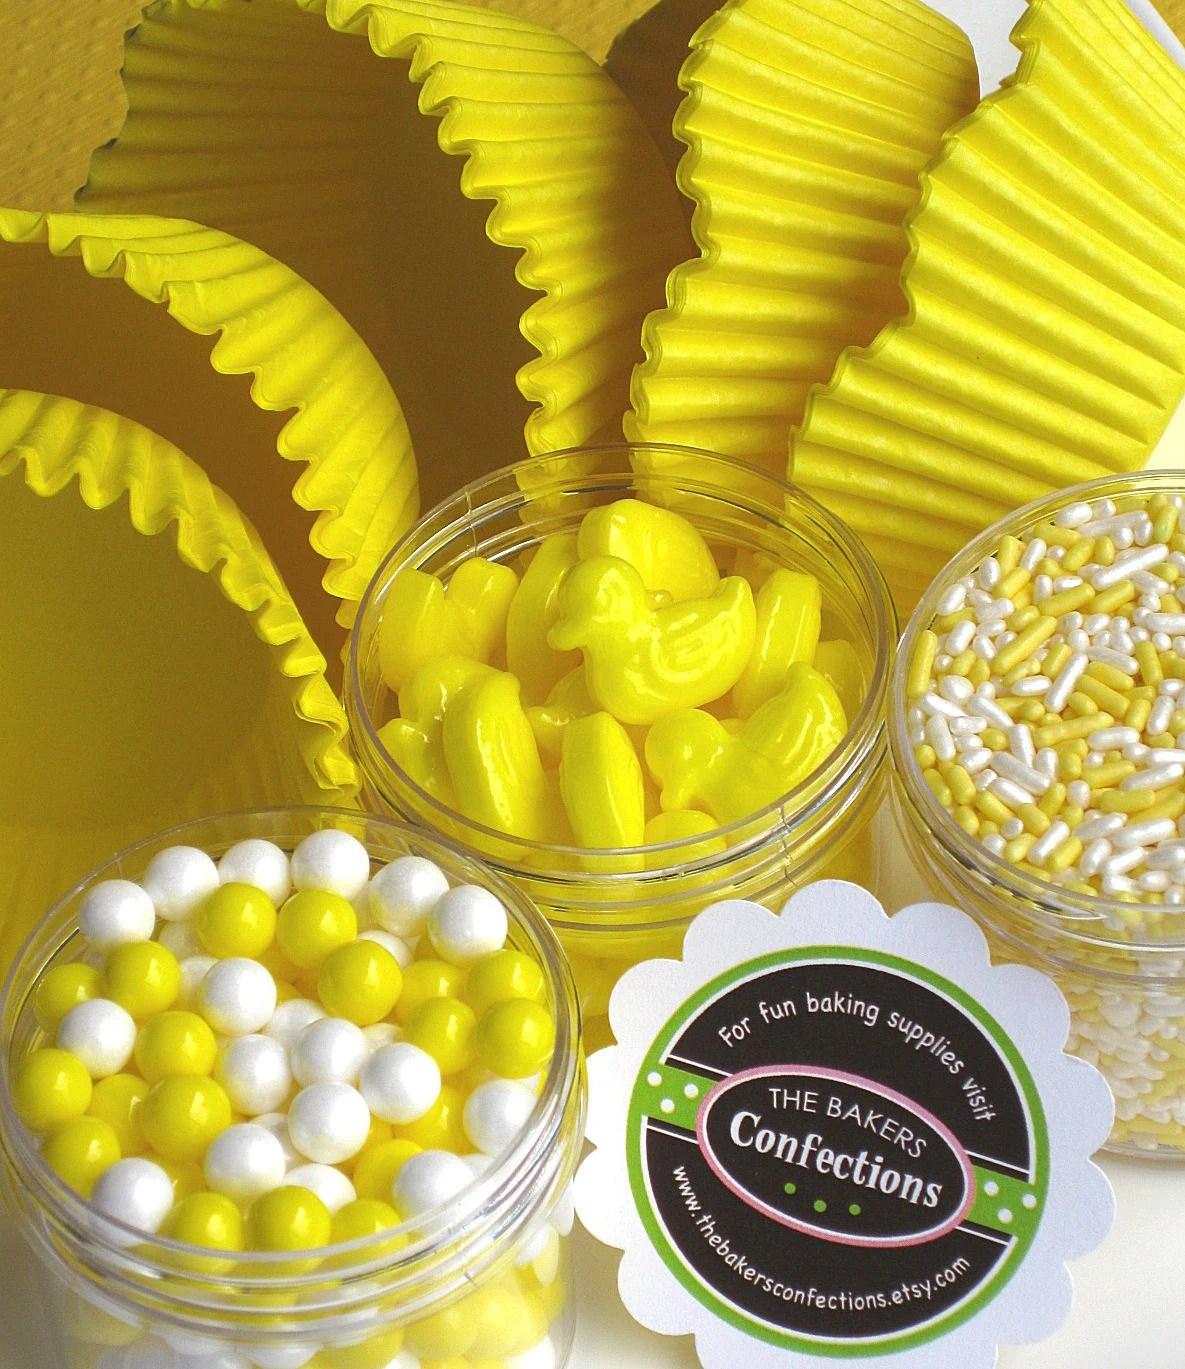 Yellow Duck Cupcake Kit with Liners, Sprinkles, Sugar Pearls, Edible Duck Toppers